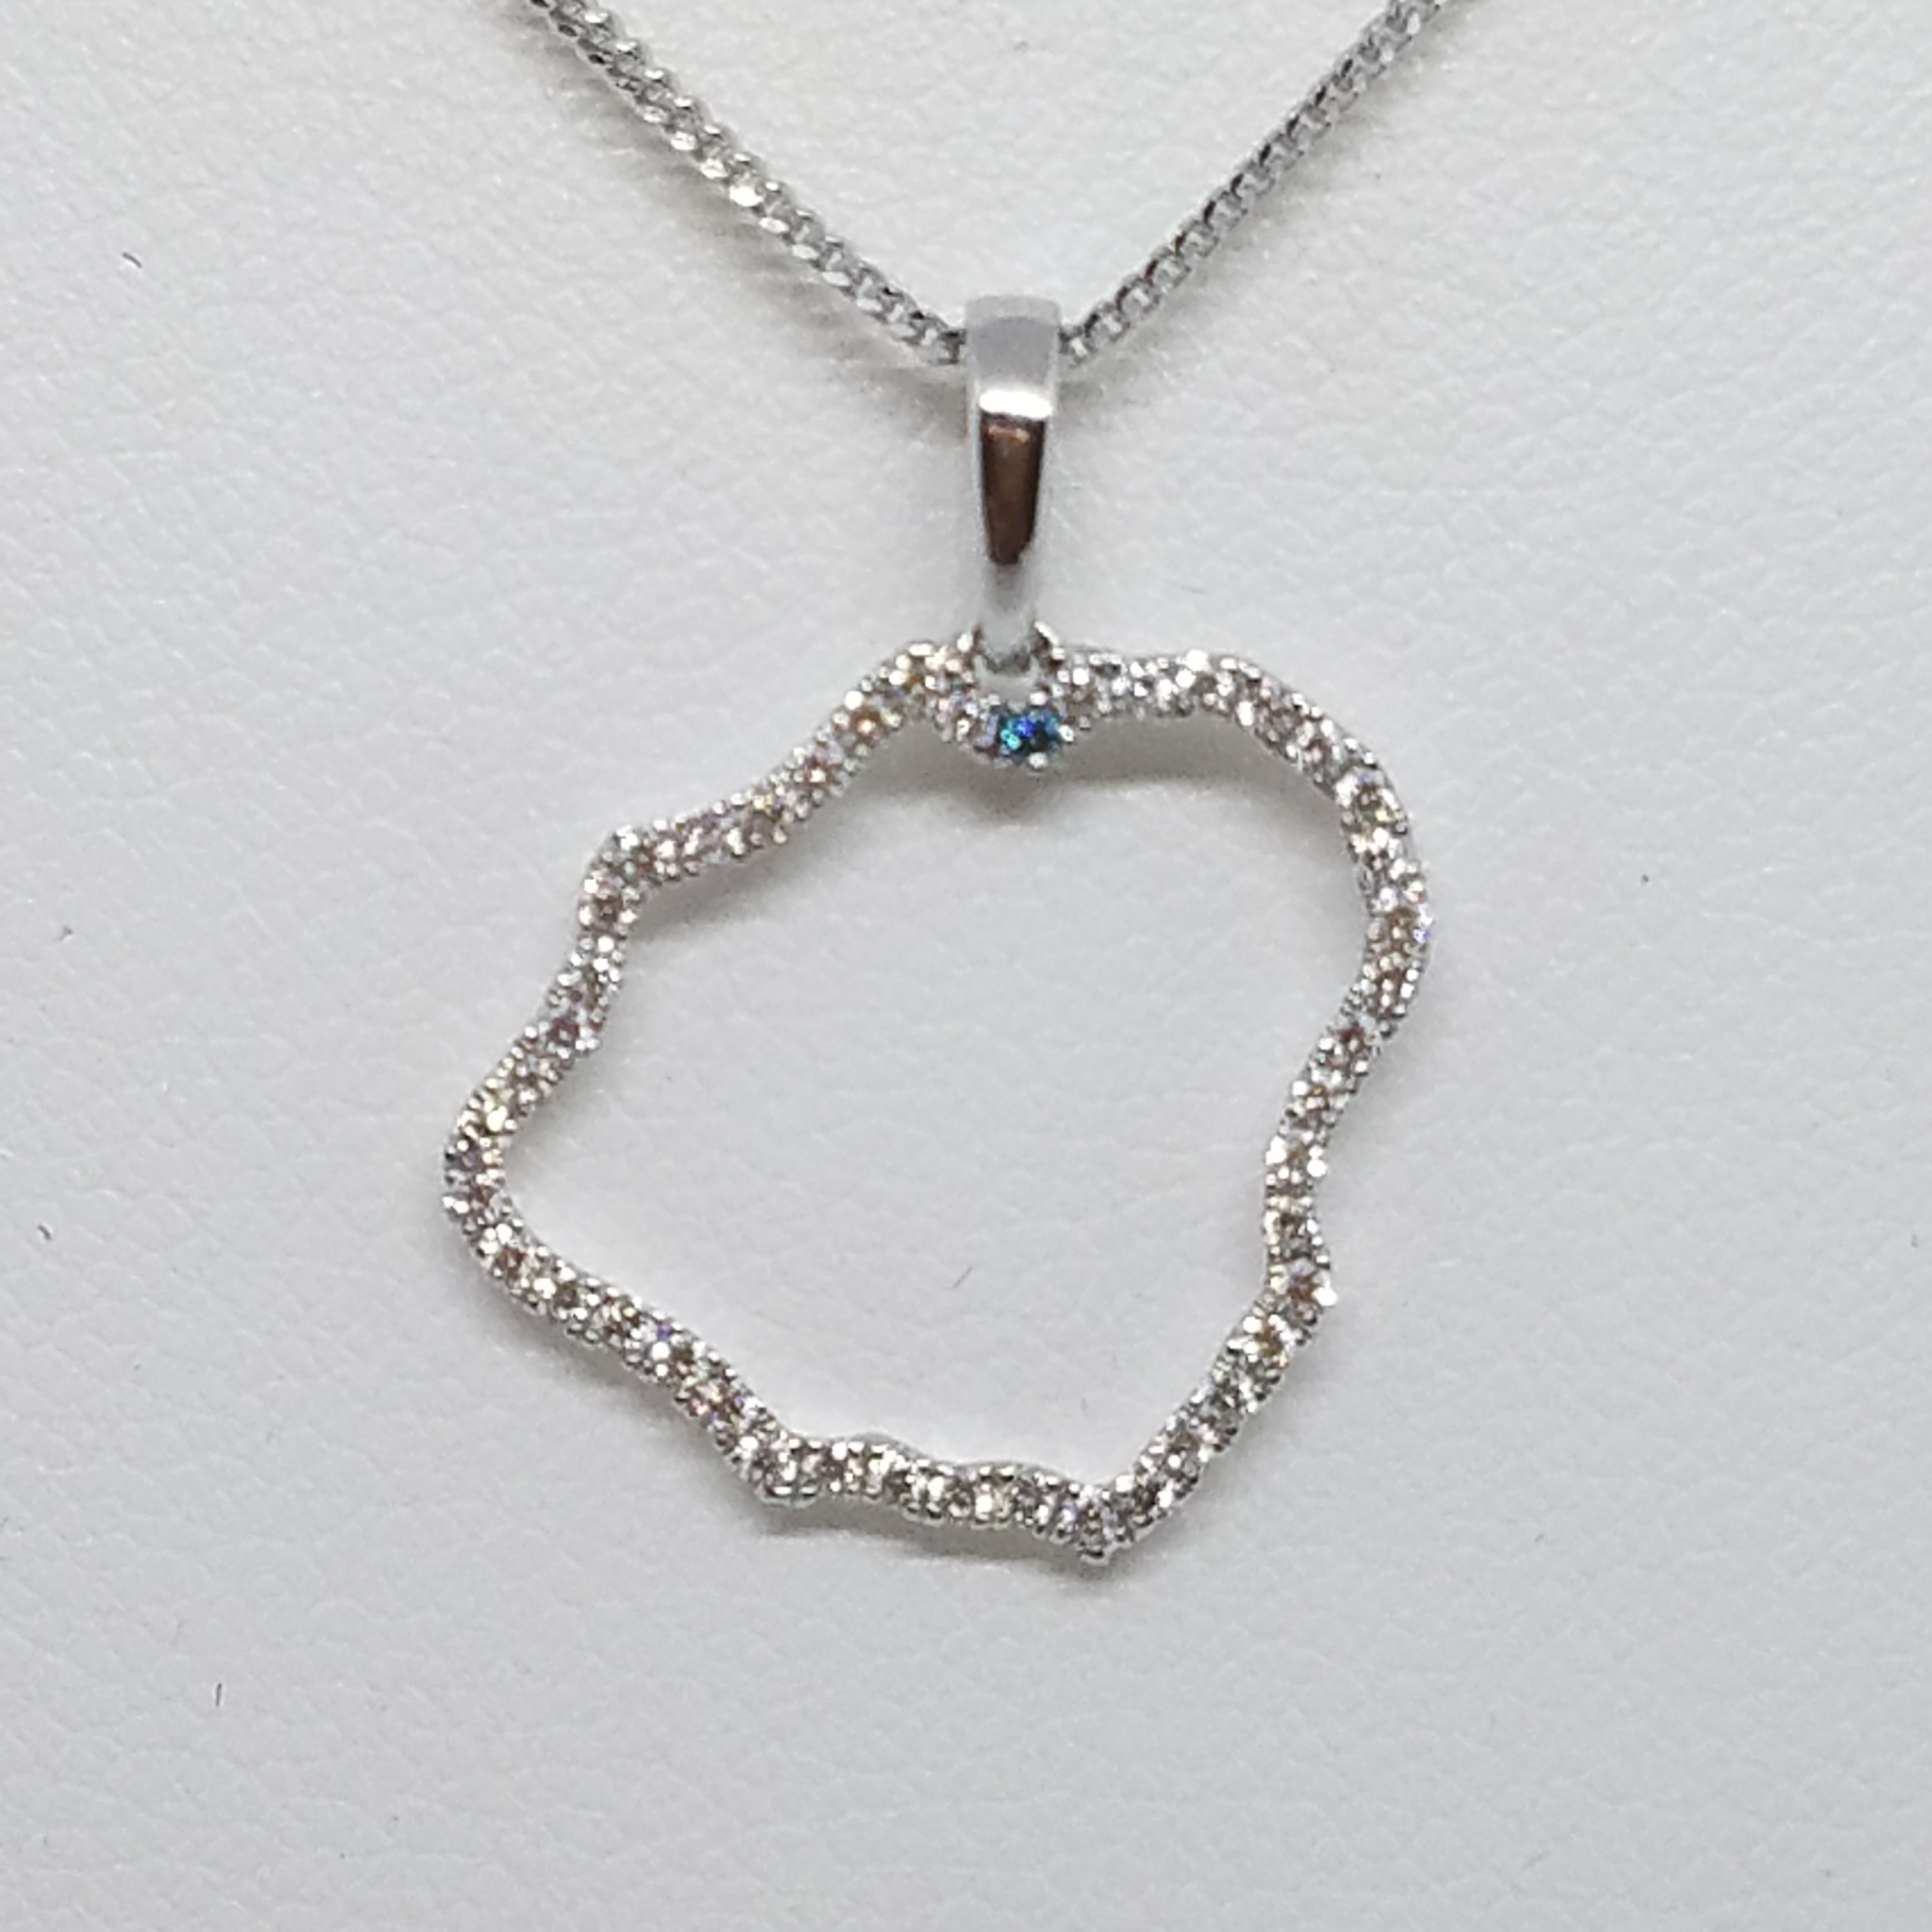 Exclusive Hanalei, Kauai Pendant with Diamonds